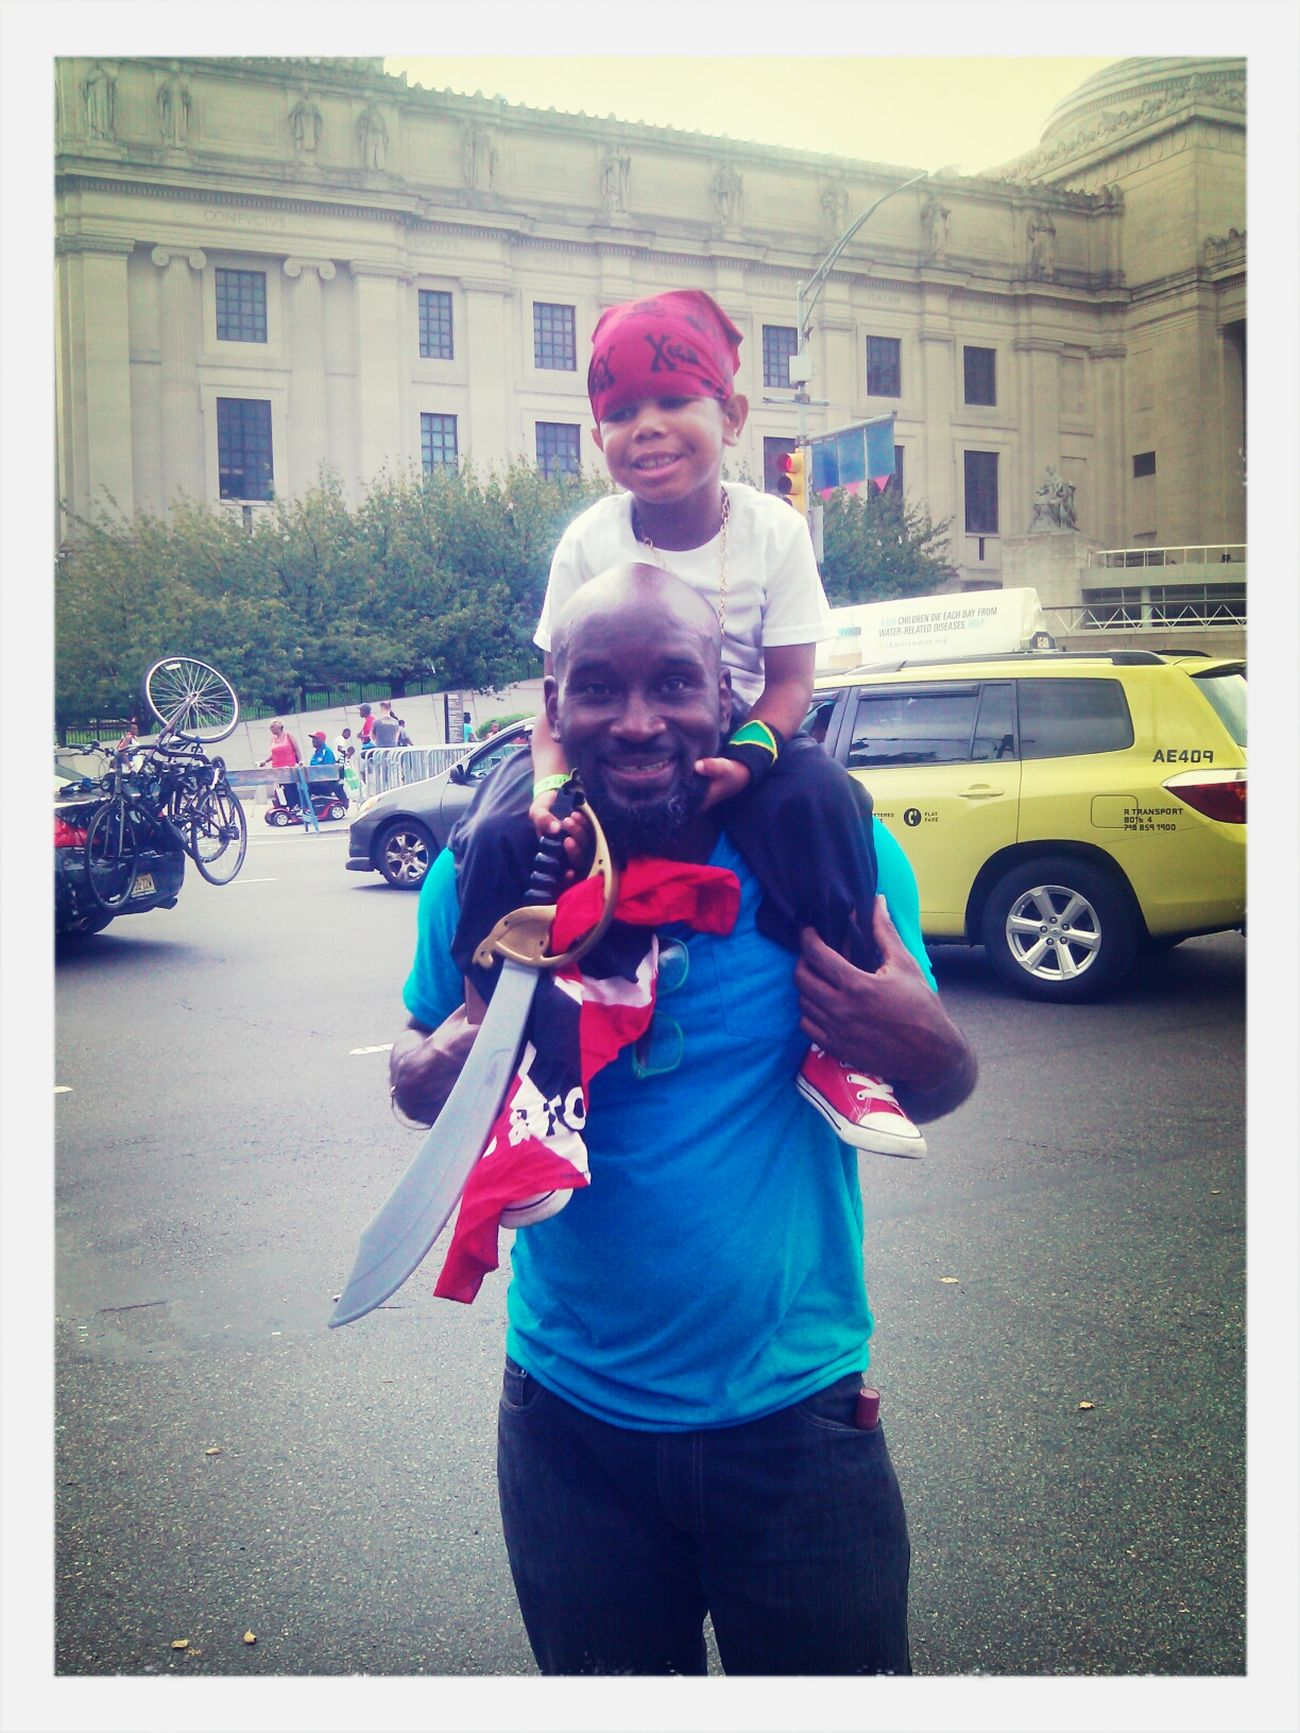 Childrens Parade Labor Day BK My Lil Buddy